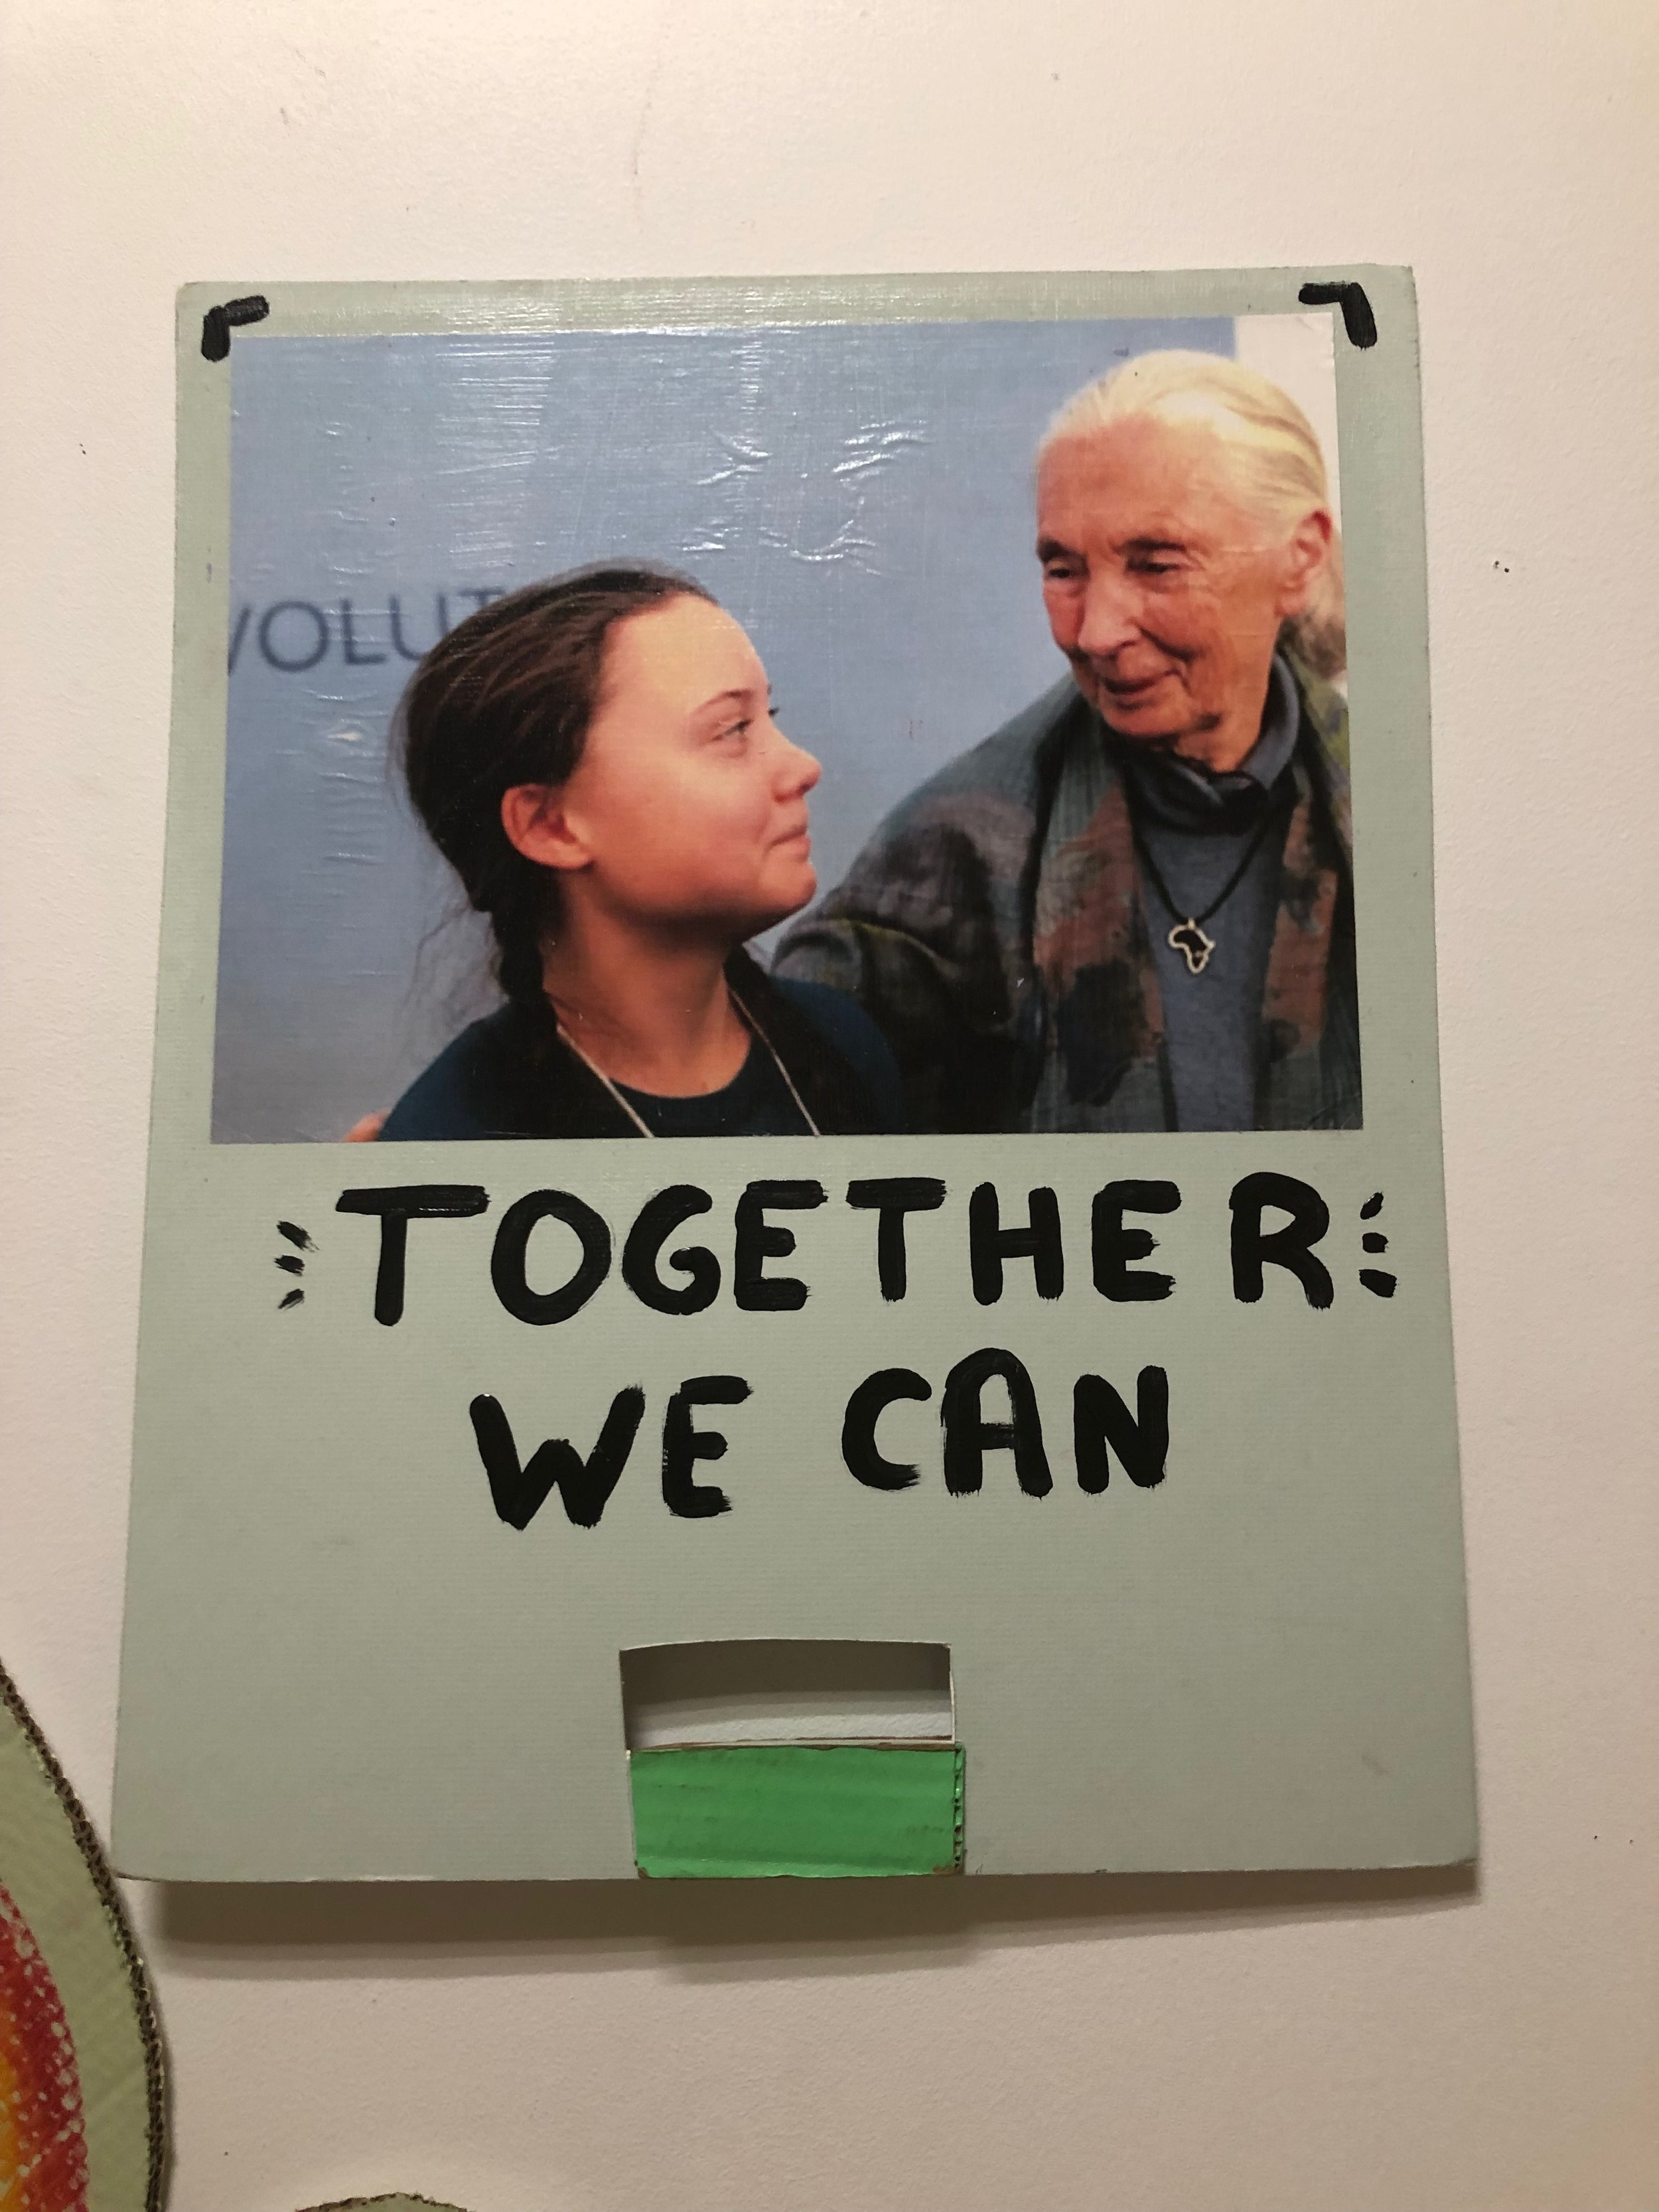 A sign featuring Greta Thunberg and Jane Goodall, made by United to End Racism